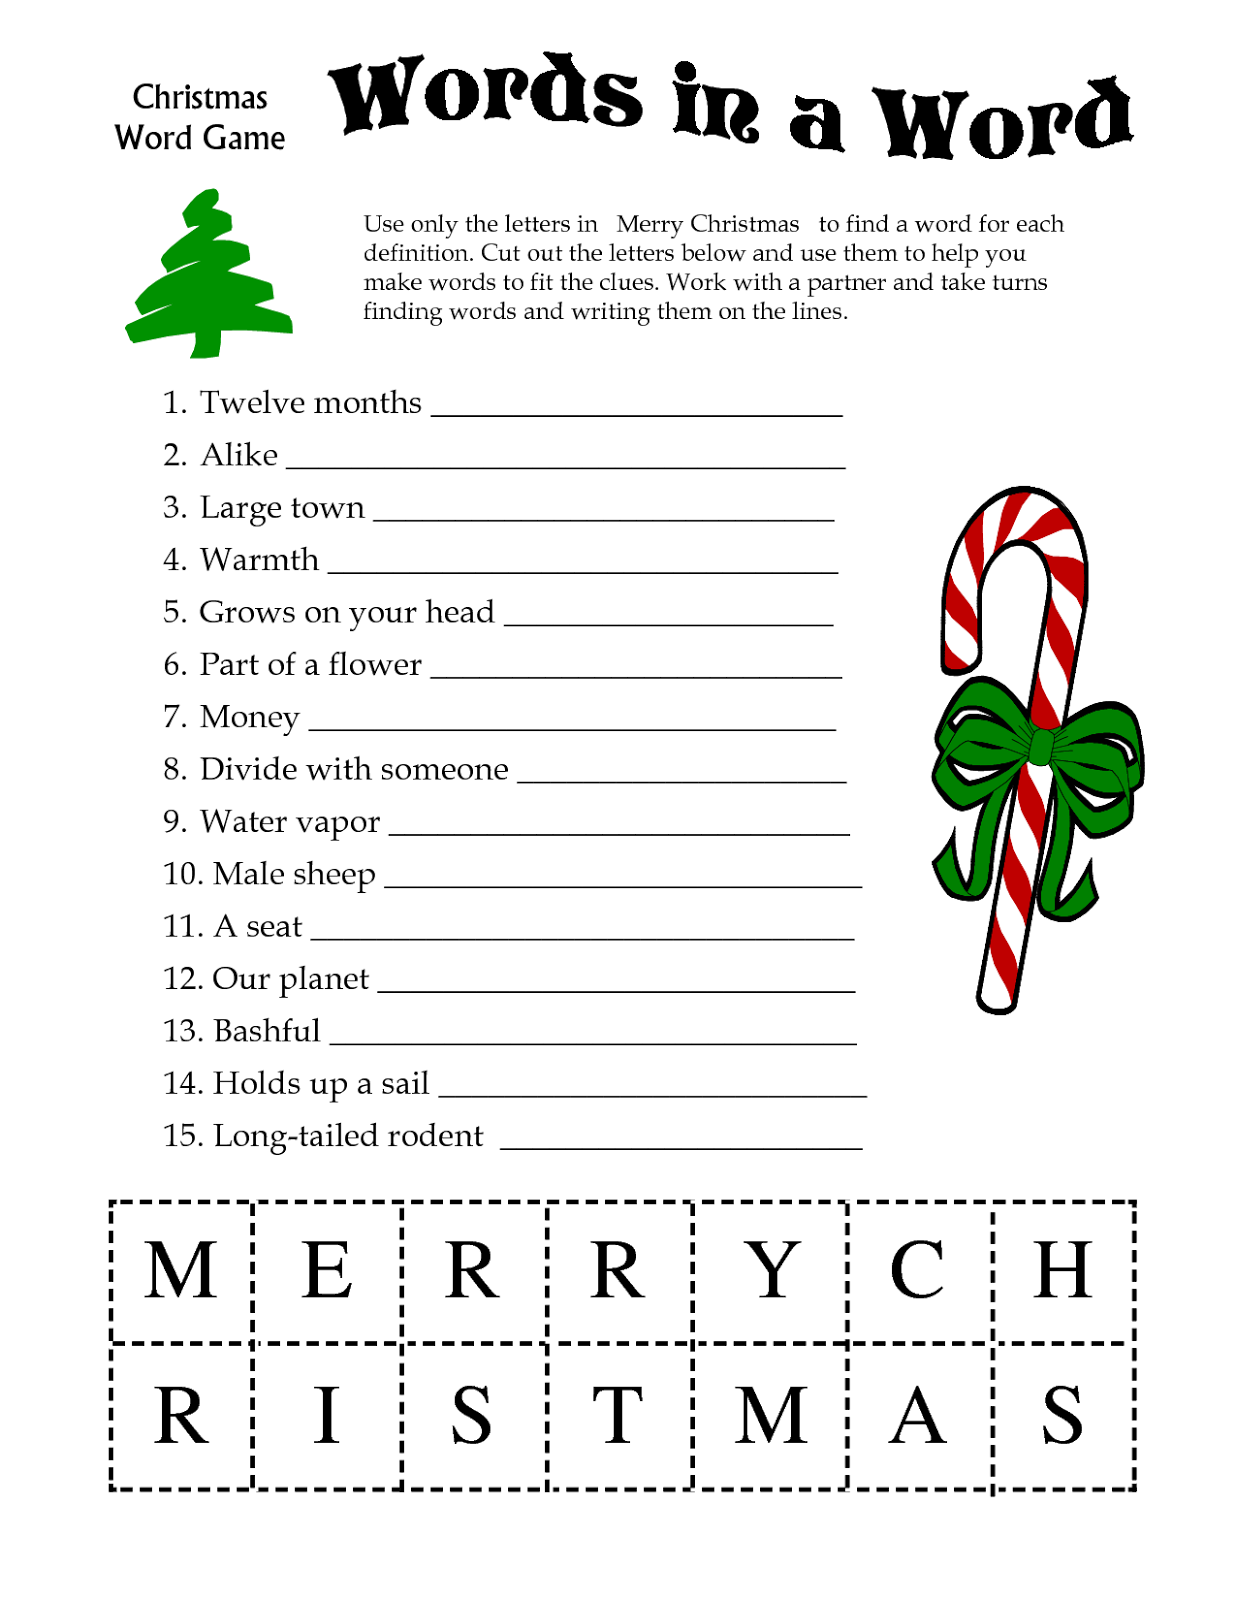 photo about Printable Christmas Games referred to as Printable Xmas Game titles - High definition Wallpapers Web site